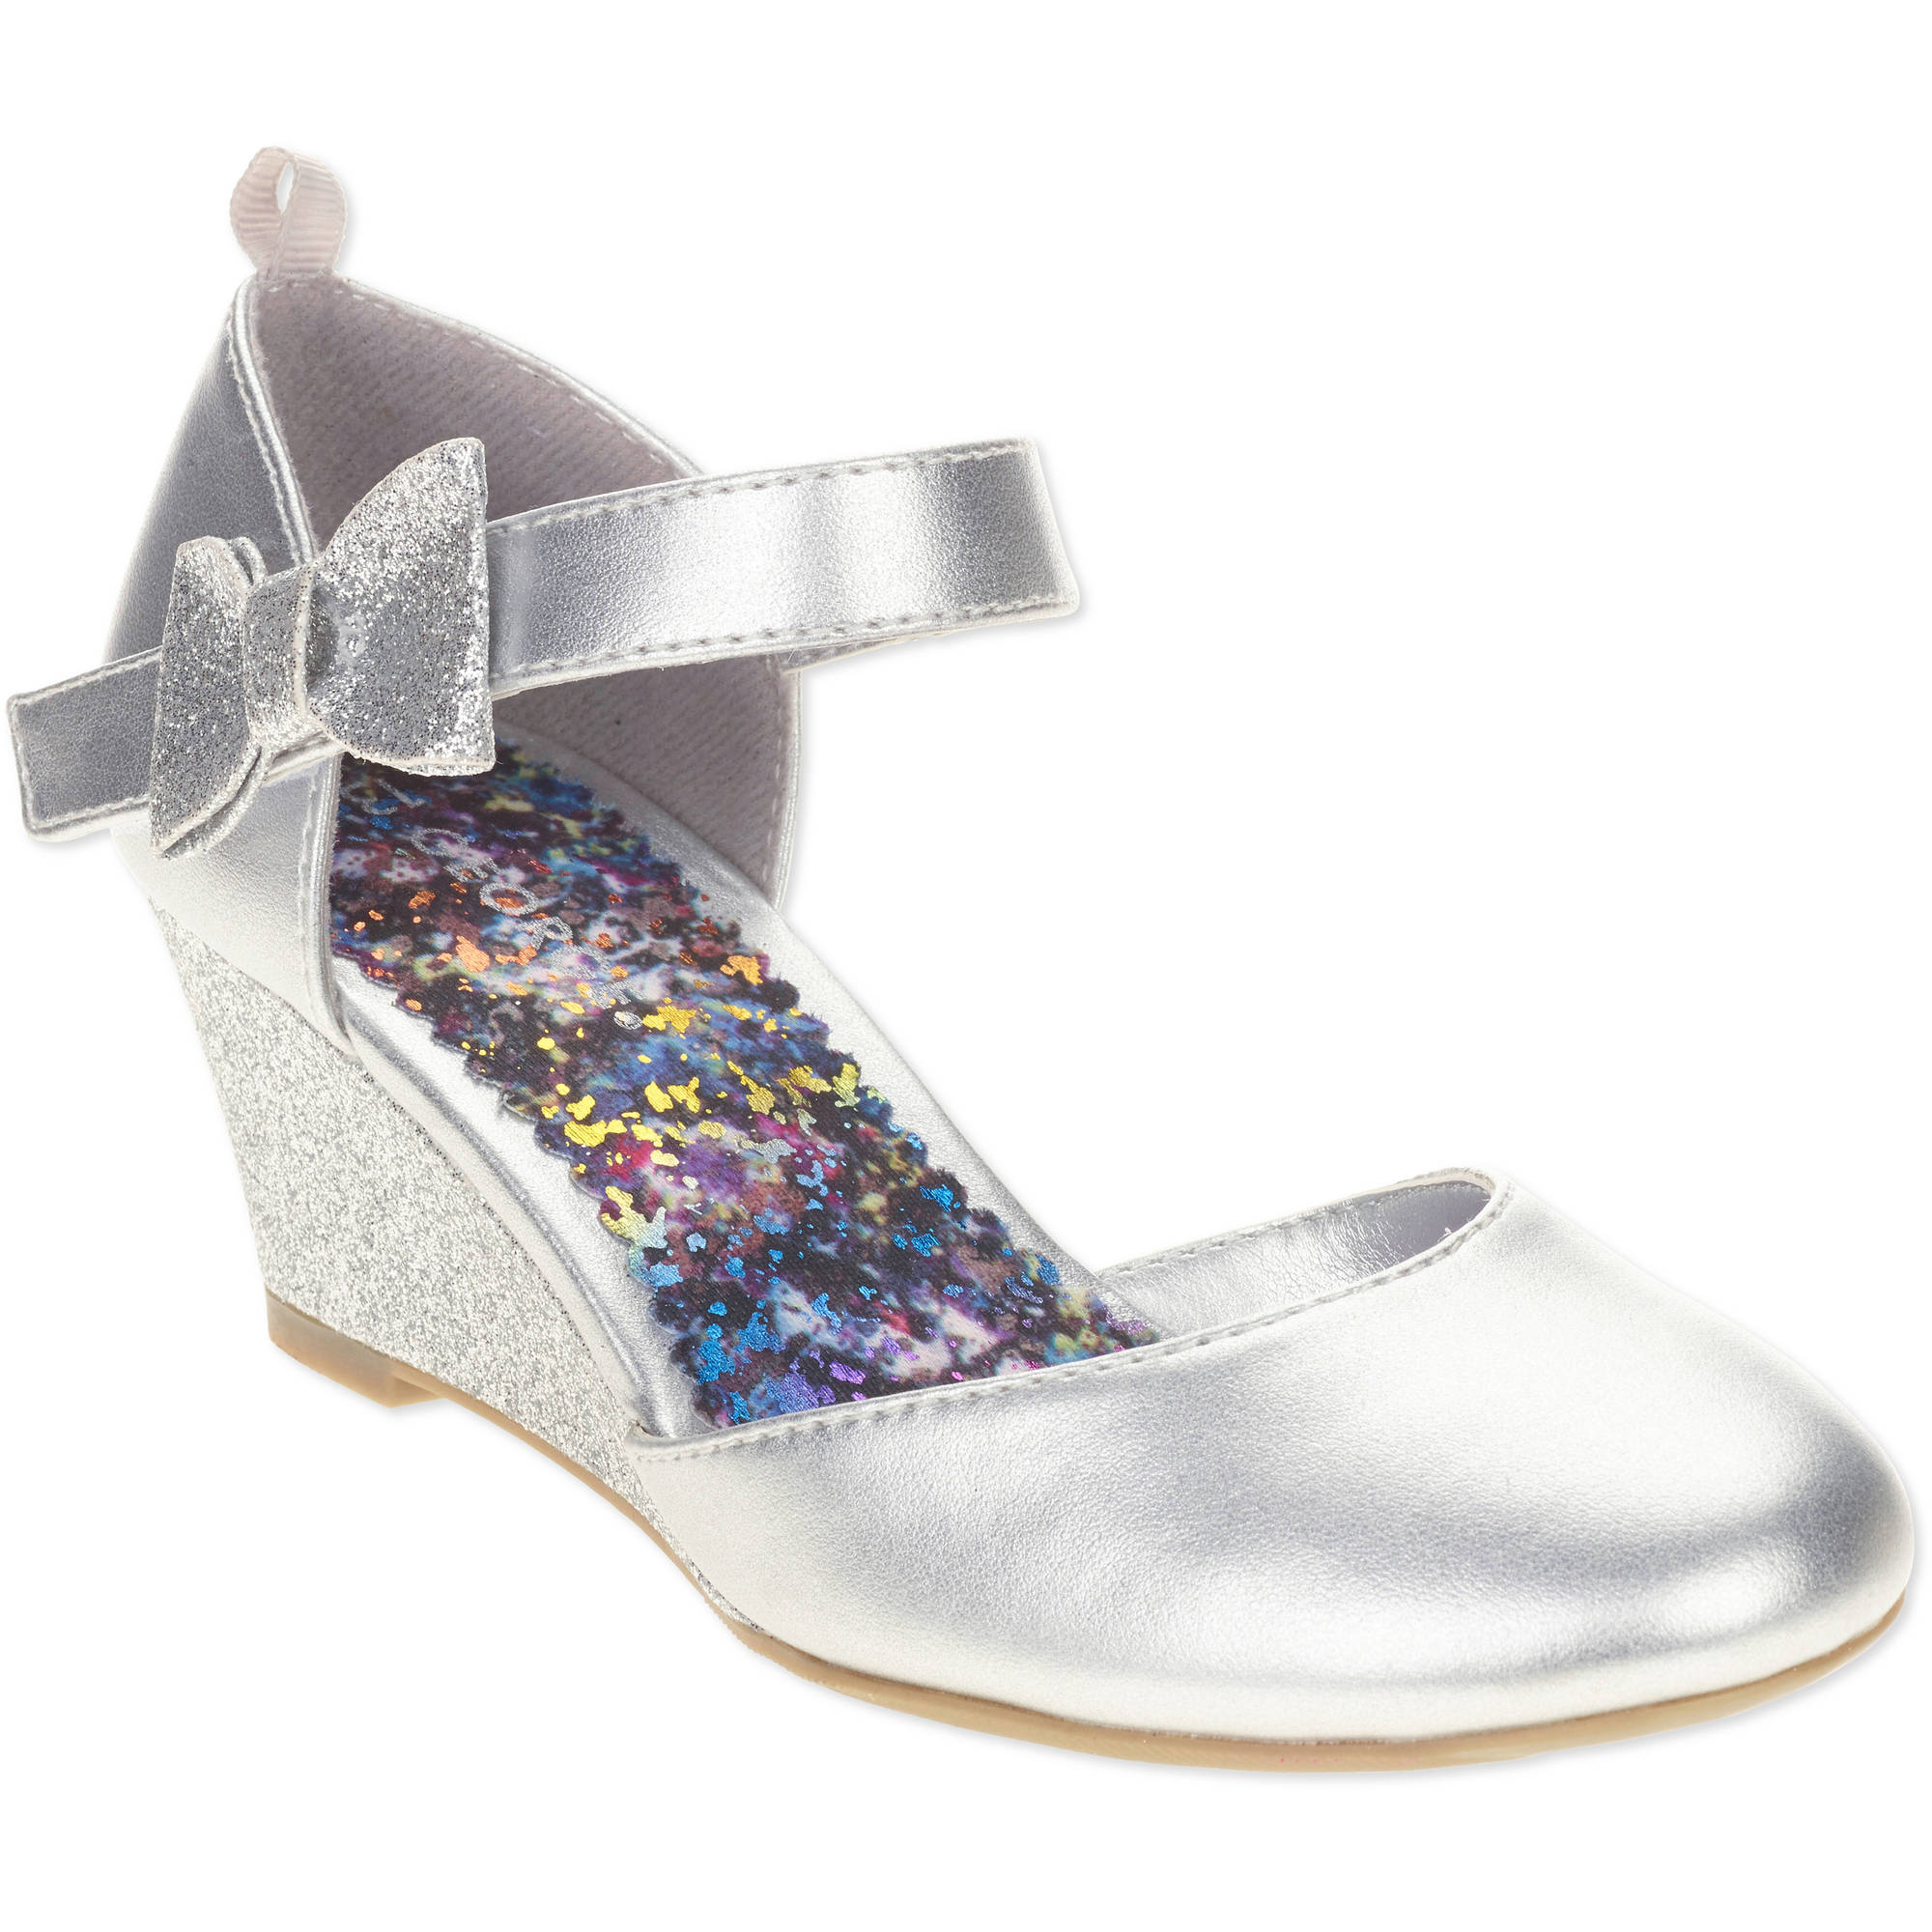 George Girls' Wedge Dress Shoe